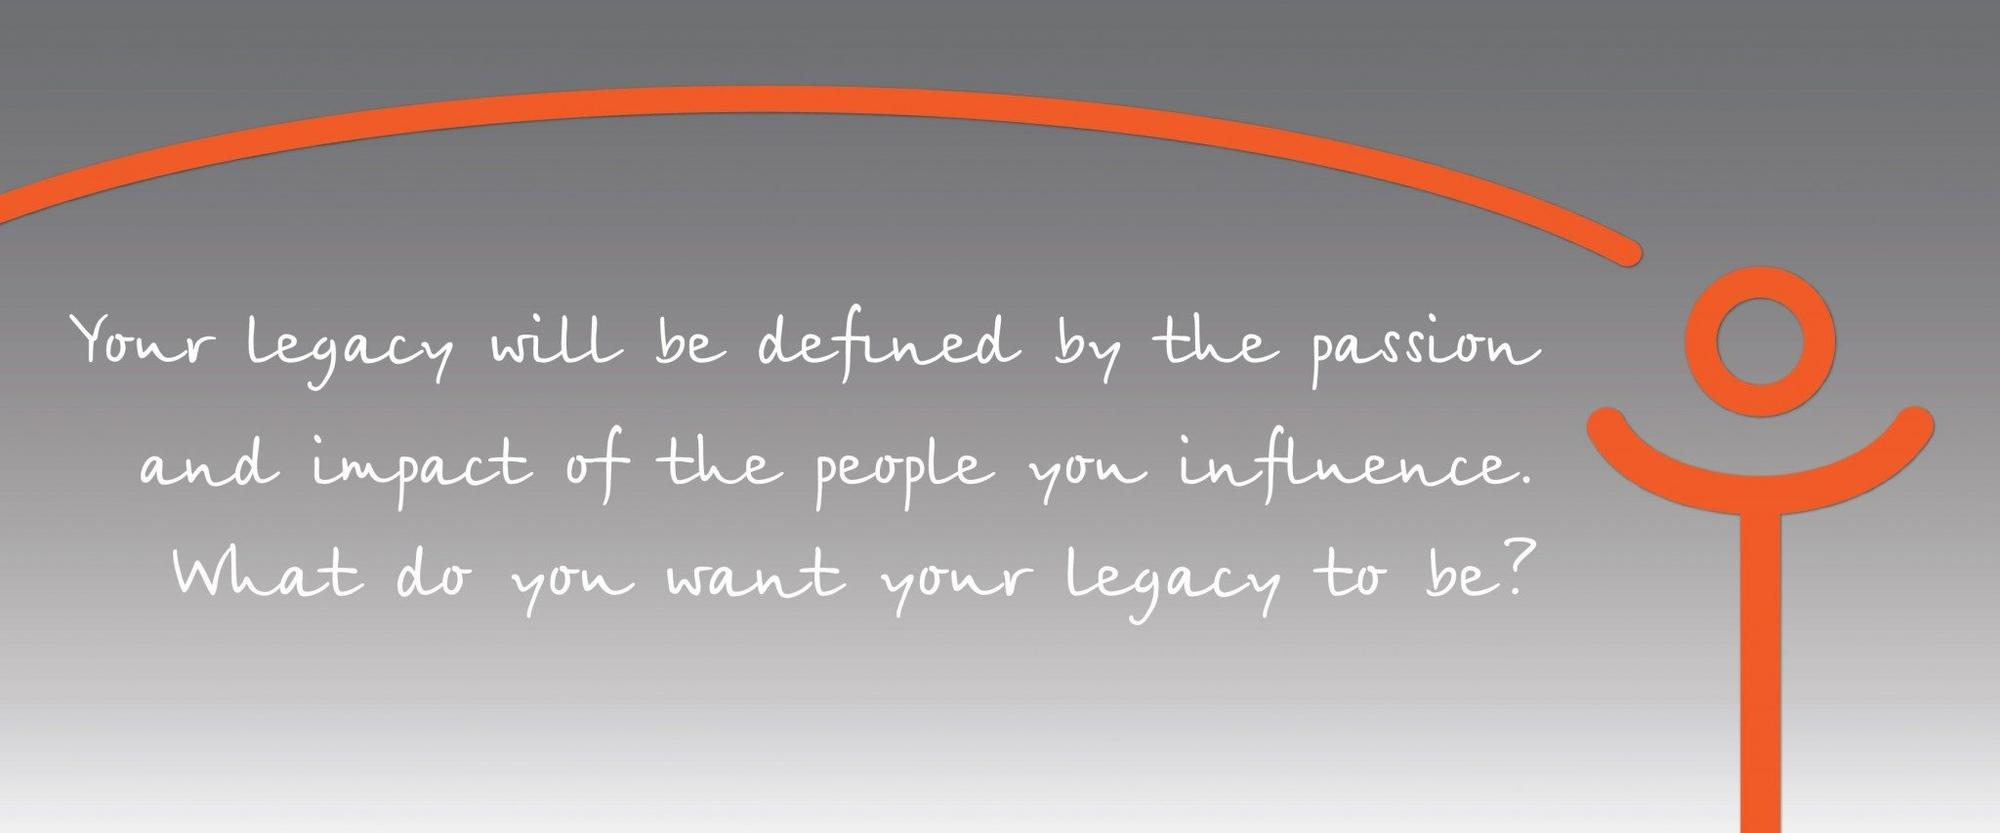 Intelivate Leadership Legacy Statement - Your legacy will be defined by the passion and impact of the people you influence. What do you want your legacy to be? Kris Fannin Quote